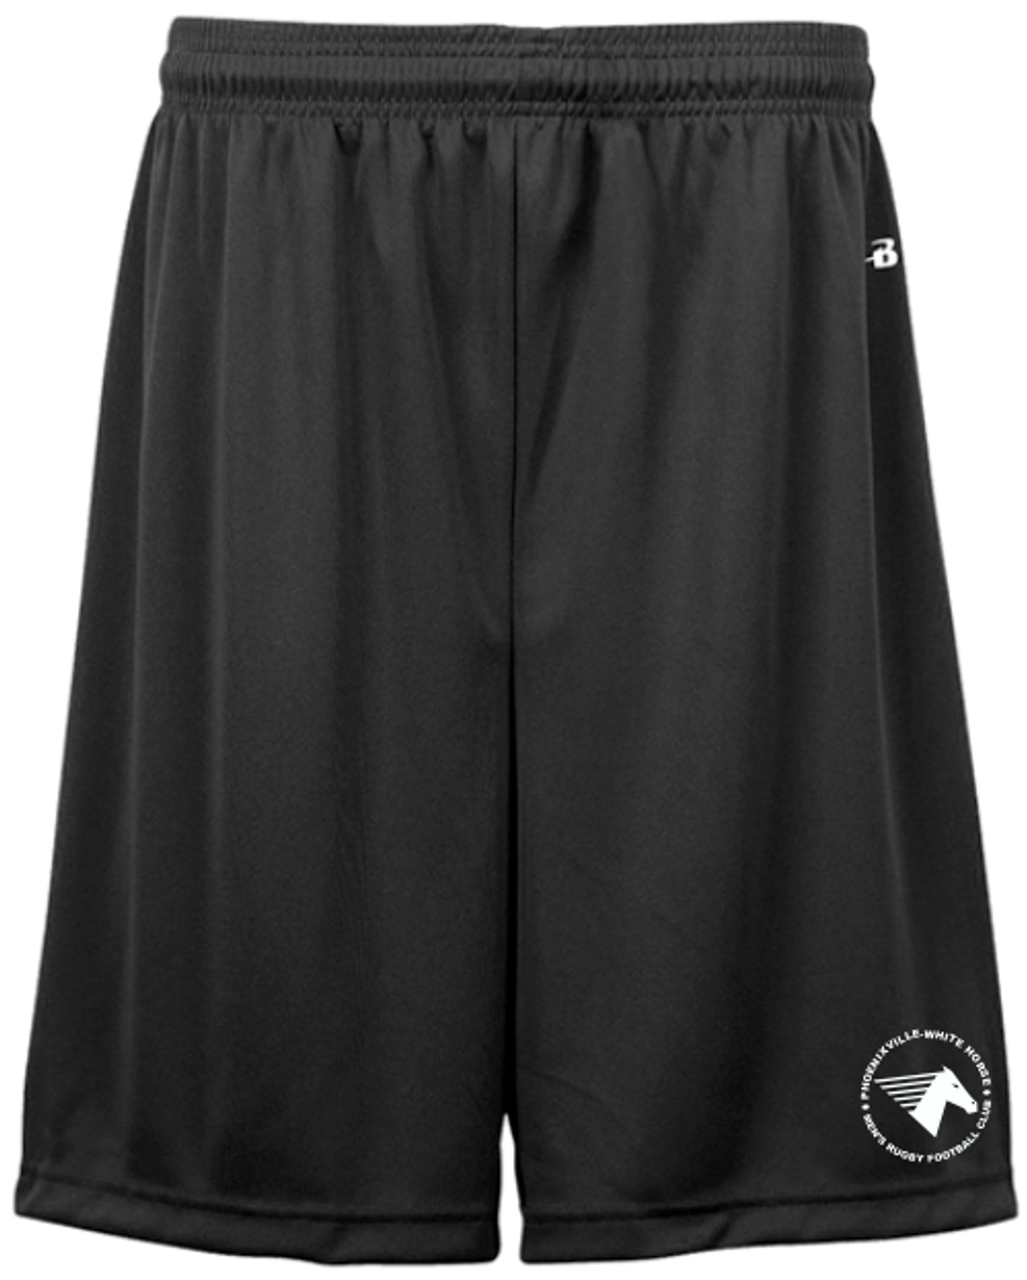 White Horse RFC Gym Short, Black